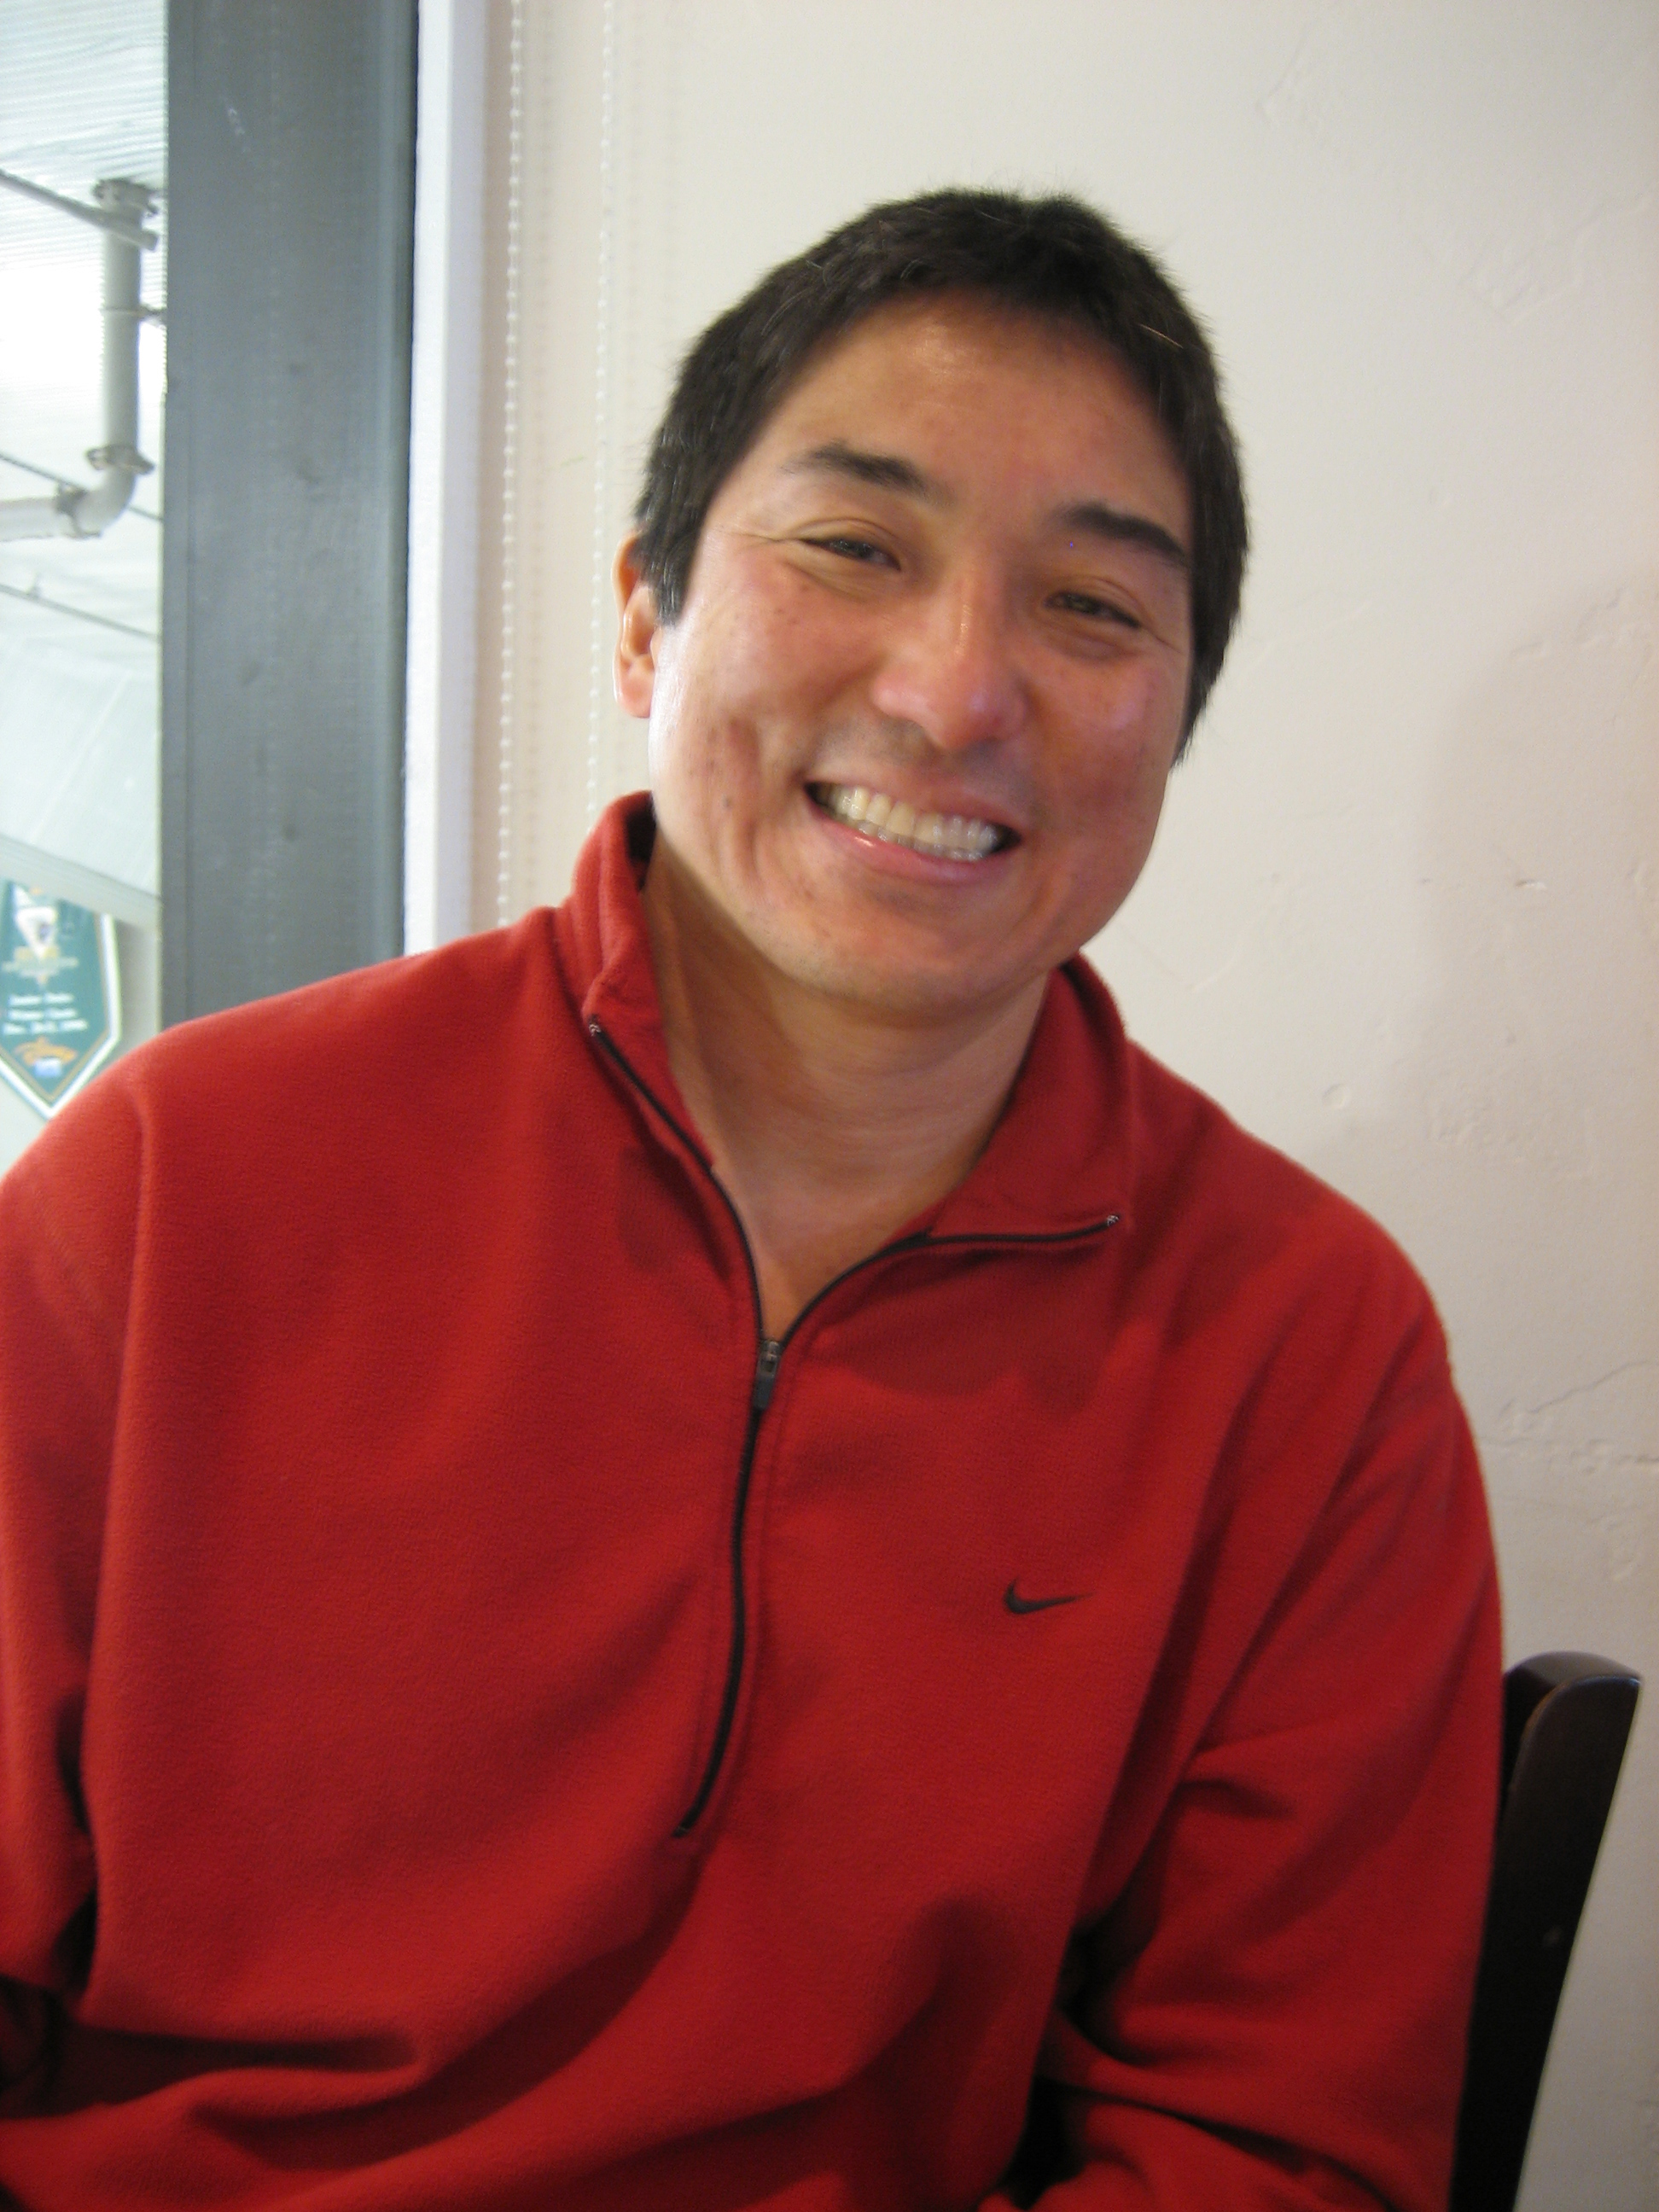 File:Guy Kawasaki, 2006.jpg - Wikipedia